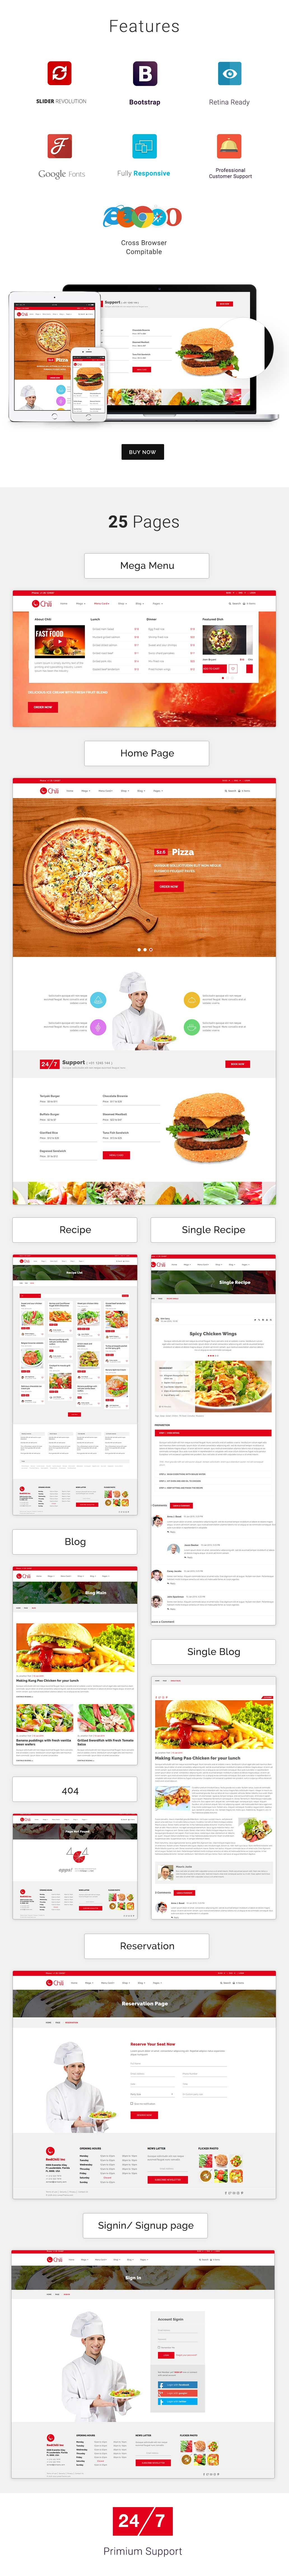 RedChili HTML5 Responsive Restaurent Template | Restaurant website ...